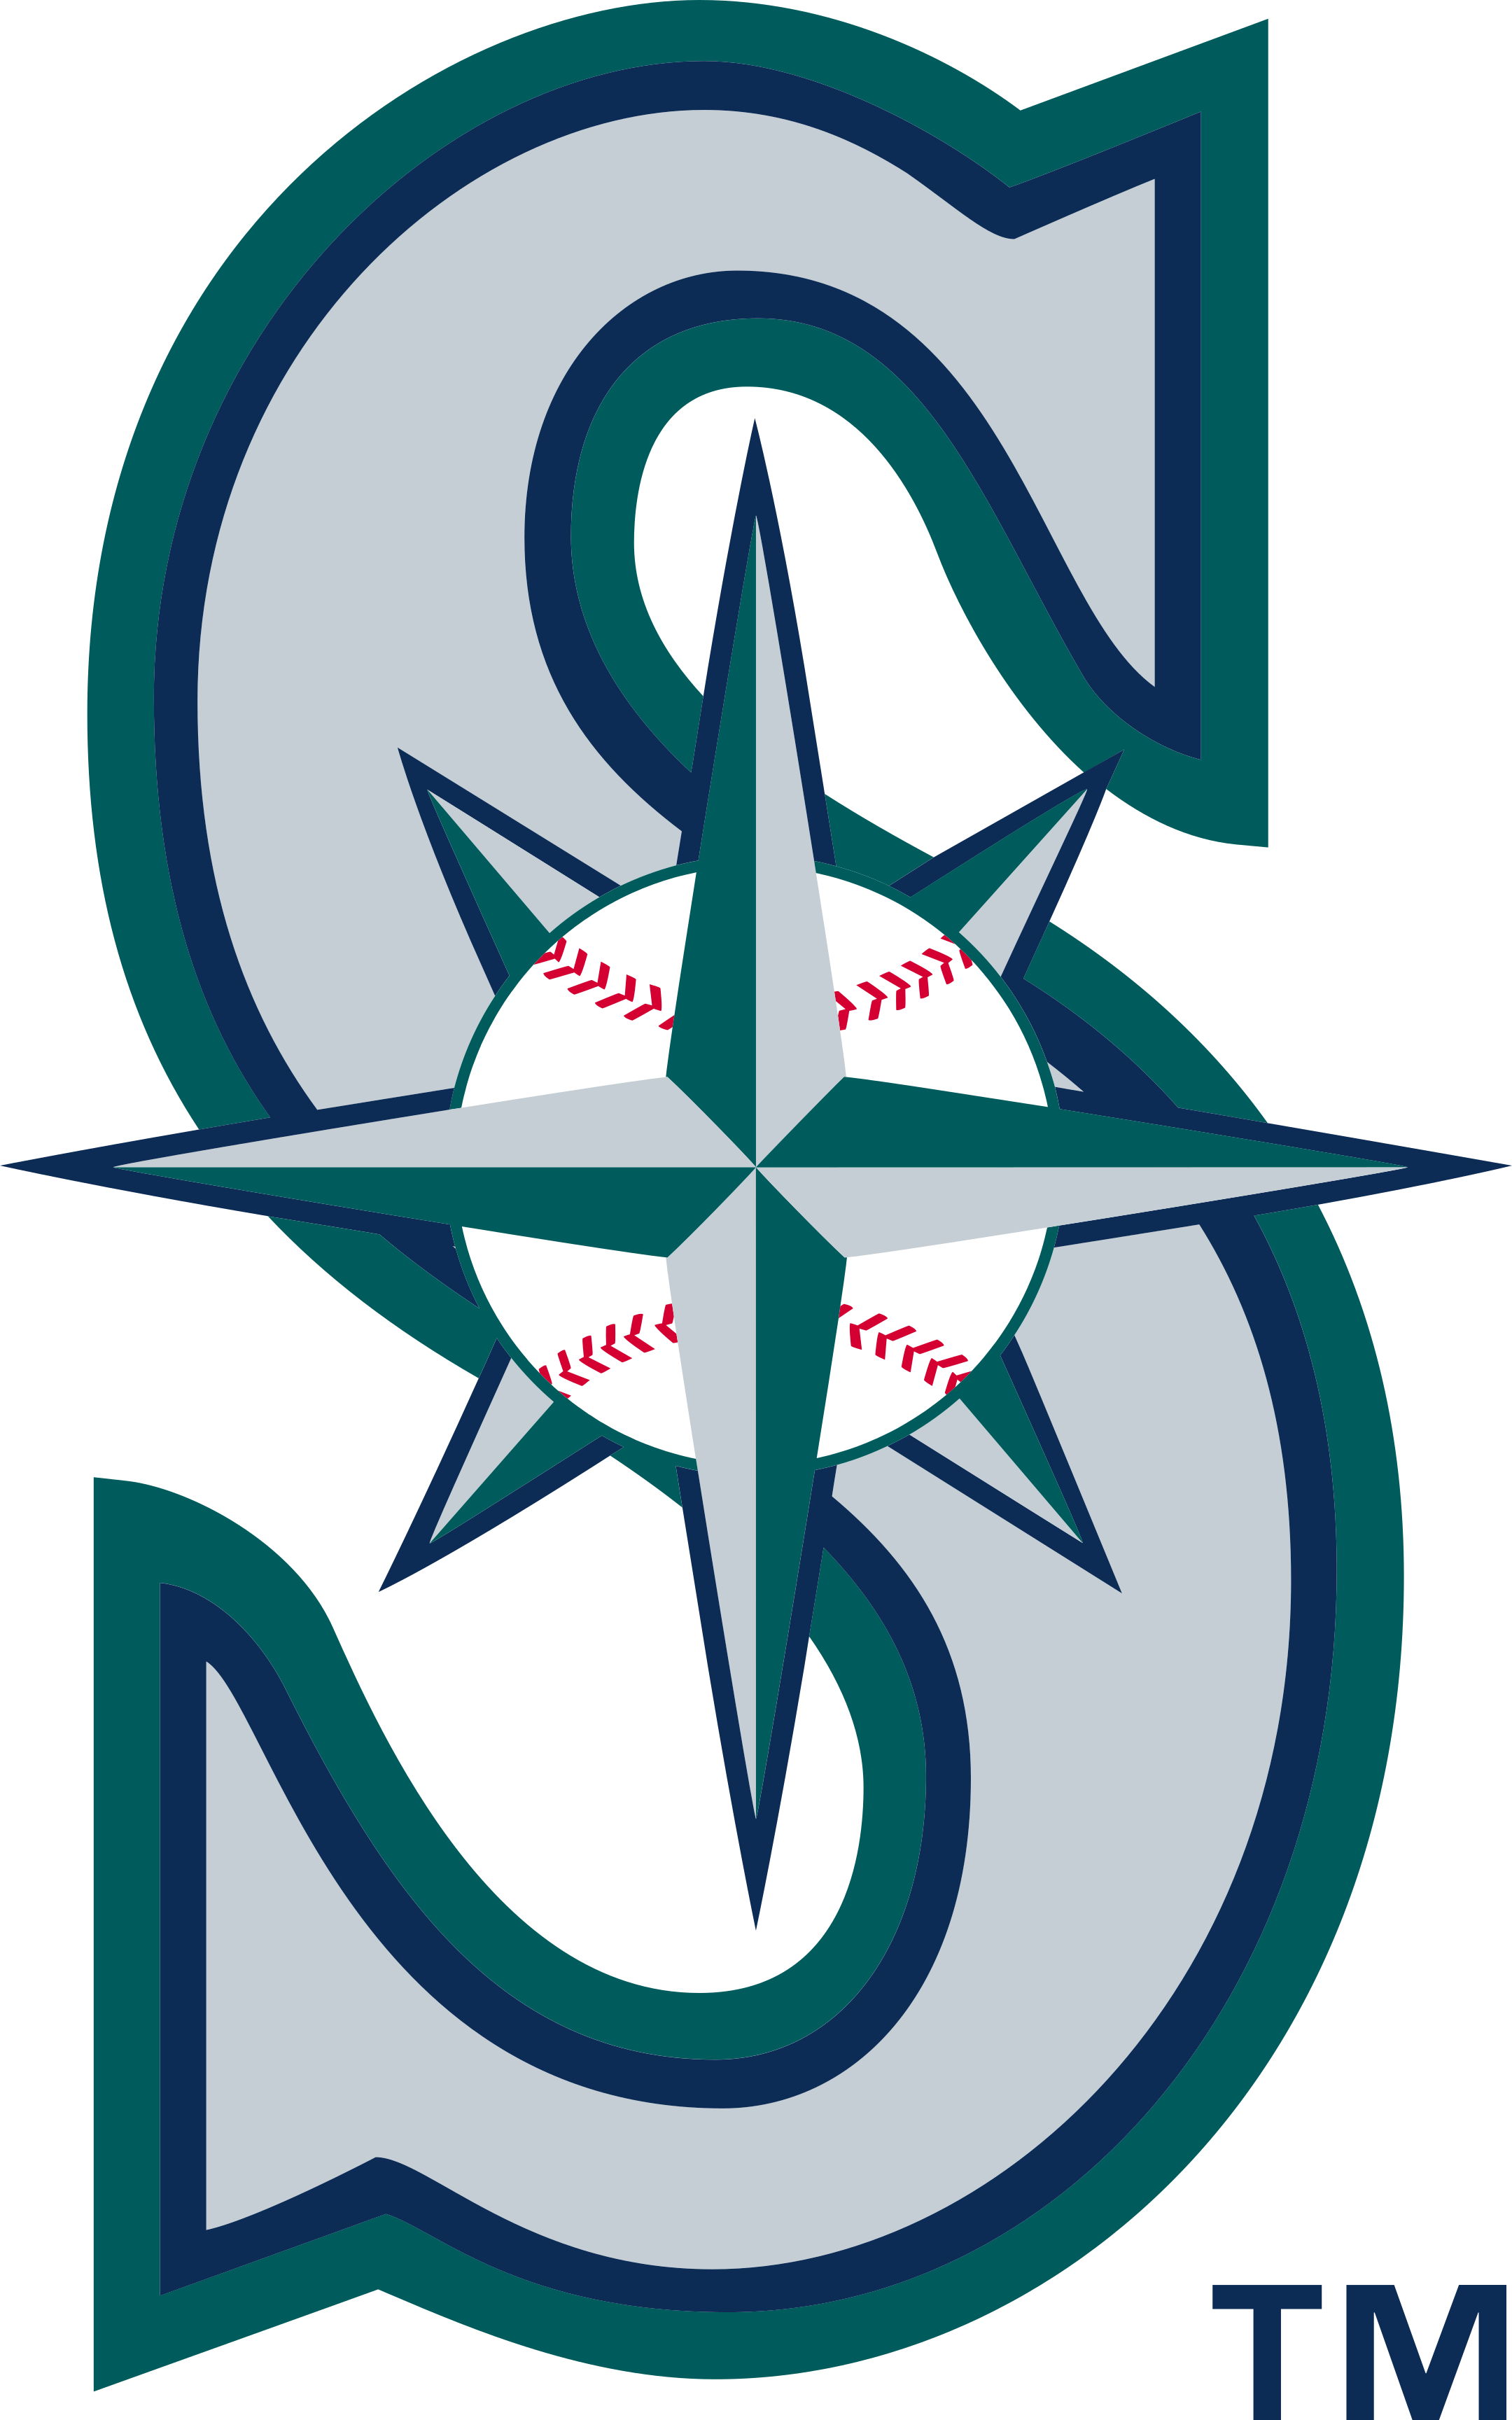 seattle mariners logo 1 - Seattle Mariners Logo